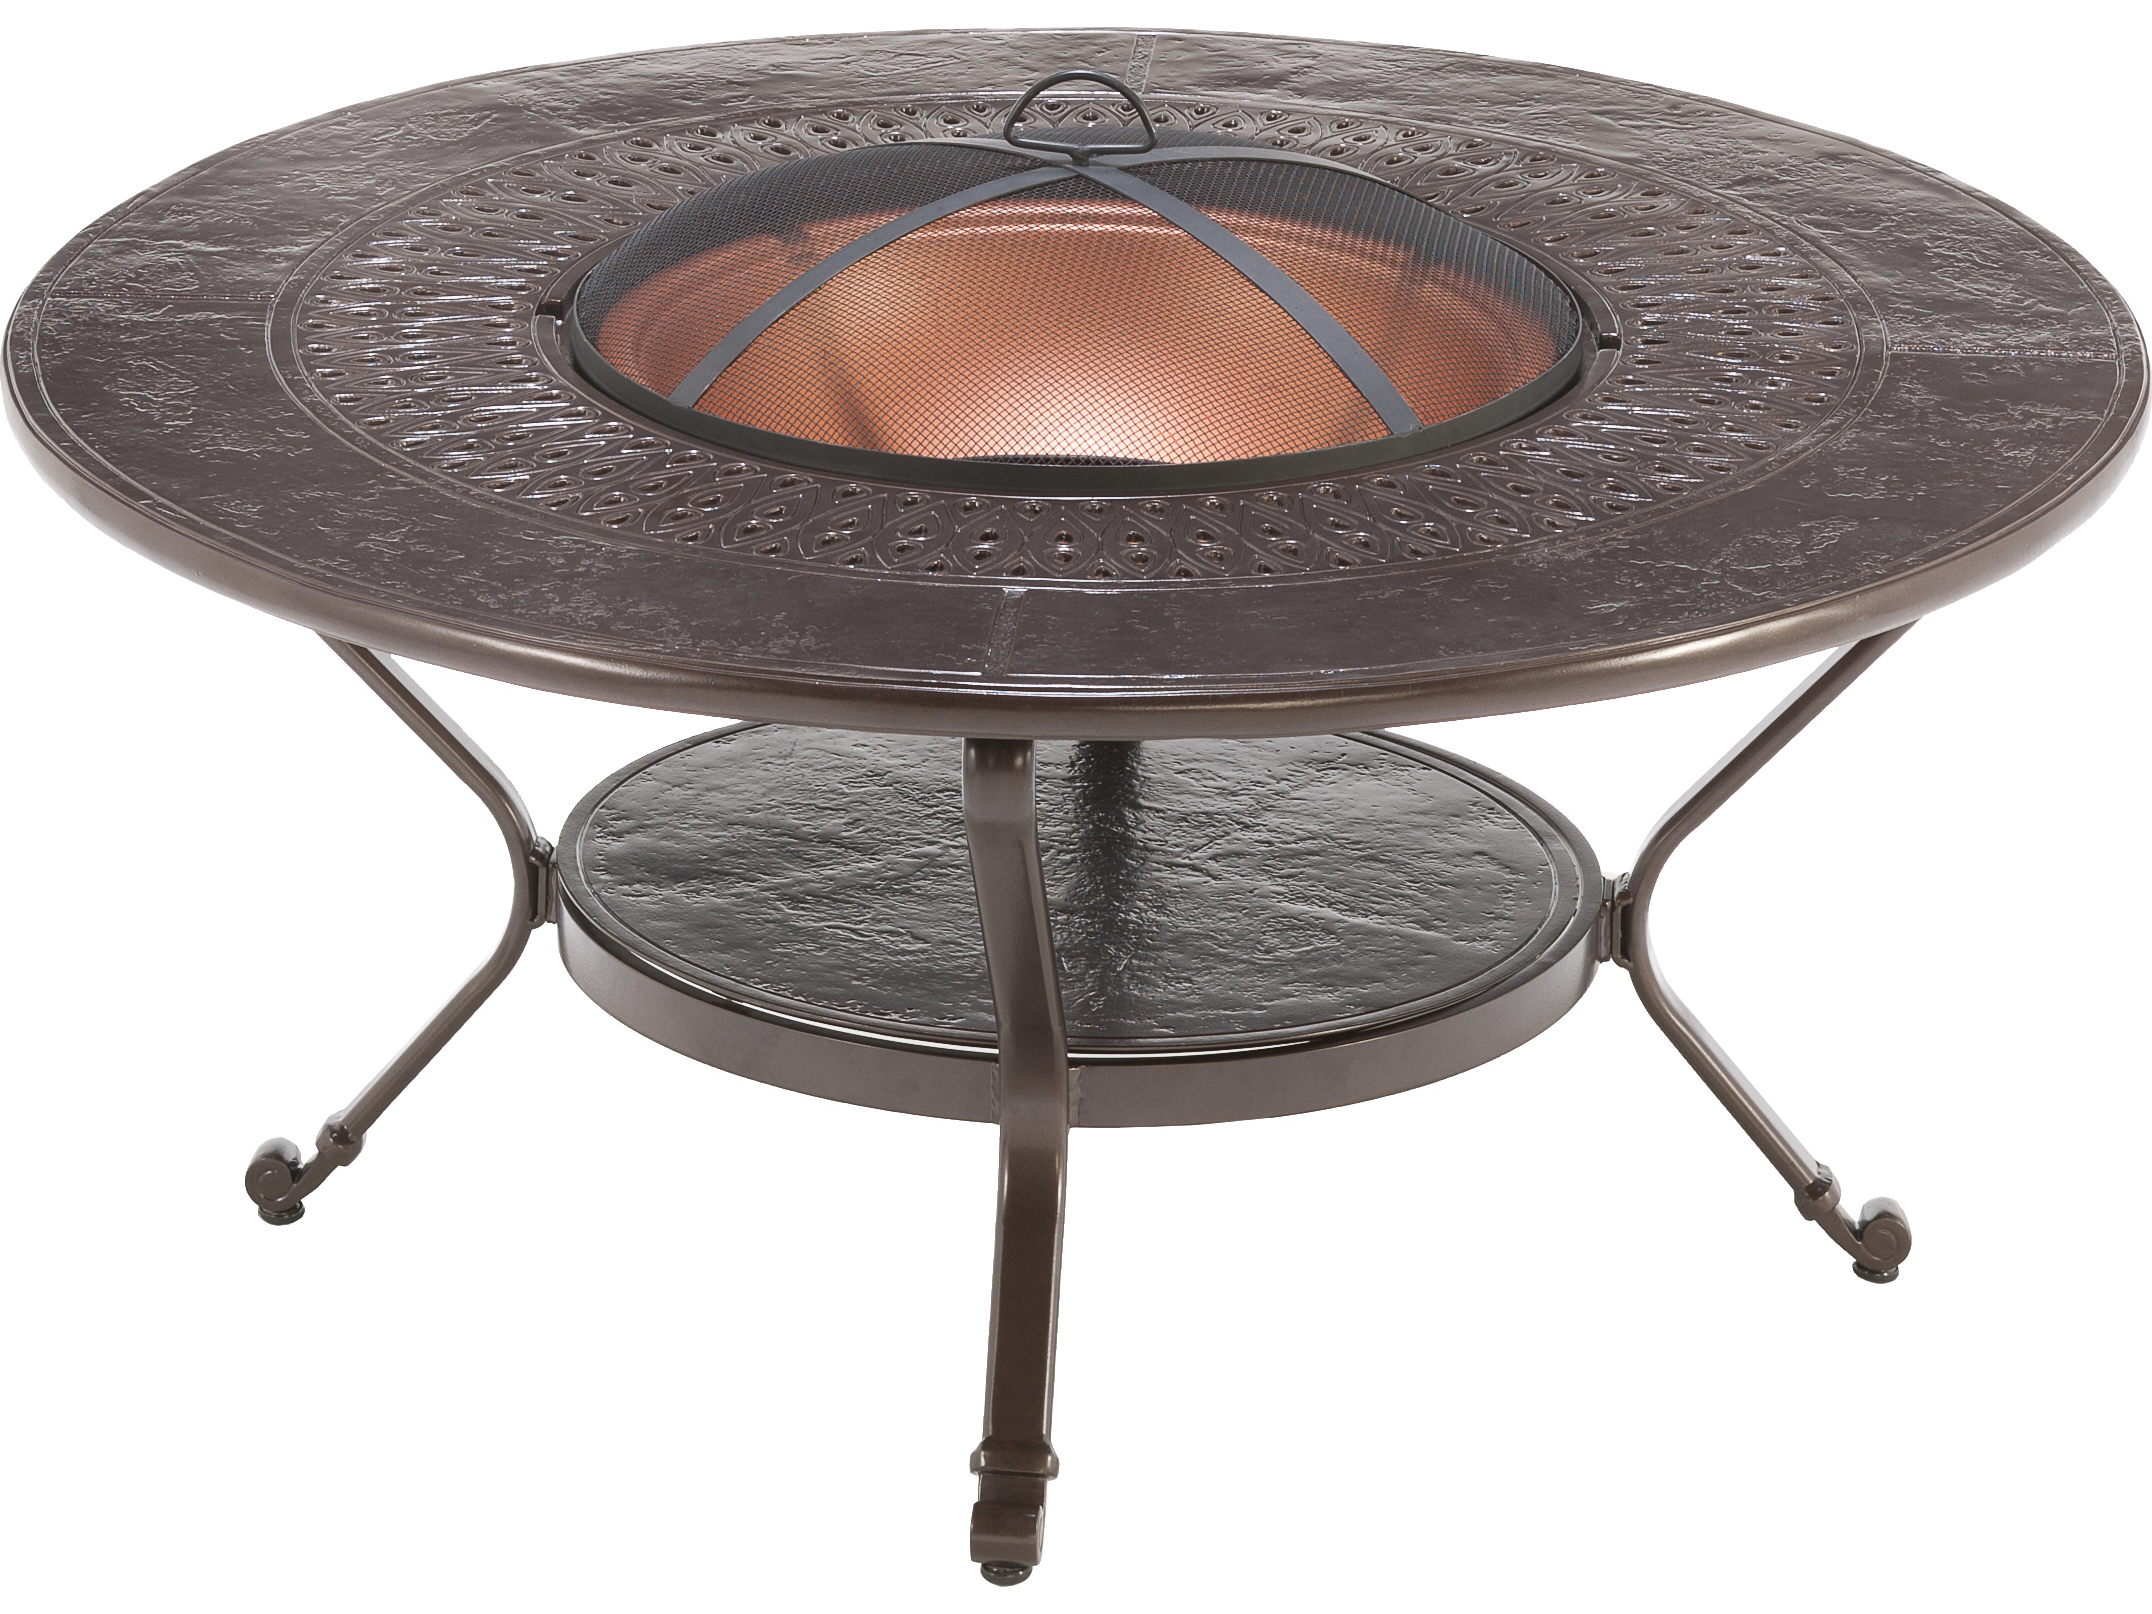 Outdoor fire pit tables patioliving winston firepit cast aluminum 48 round metal fire pit table geotapseo Gallery